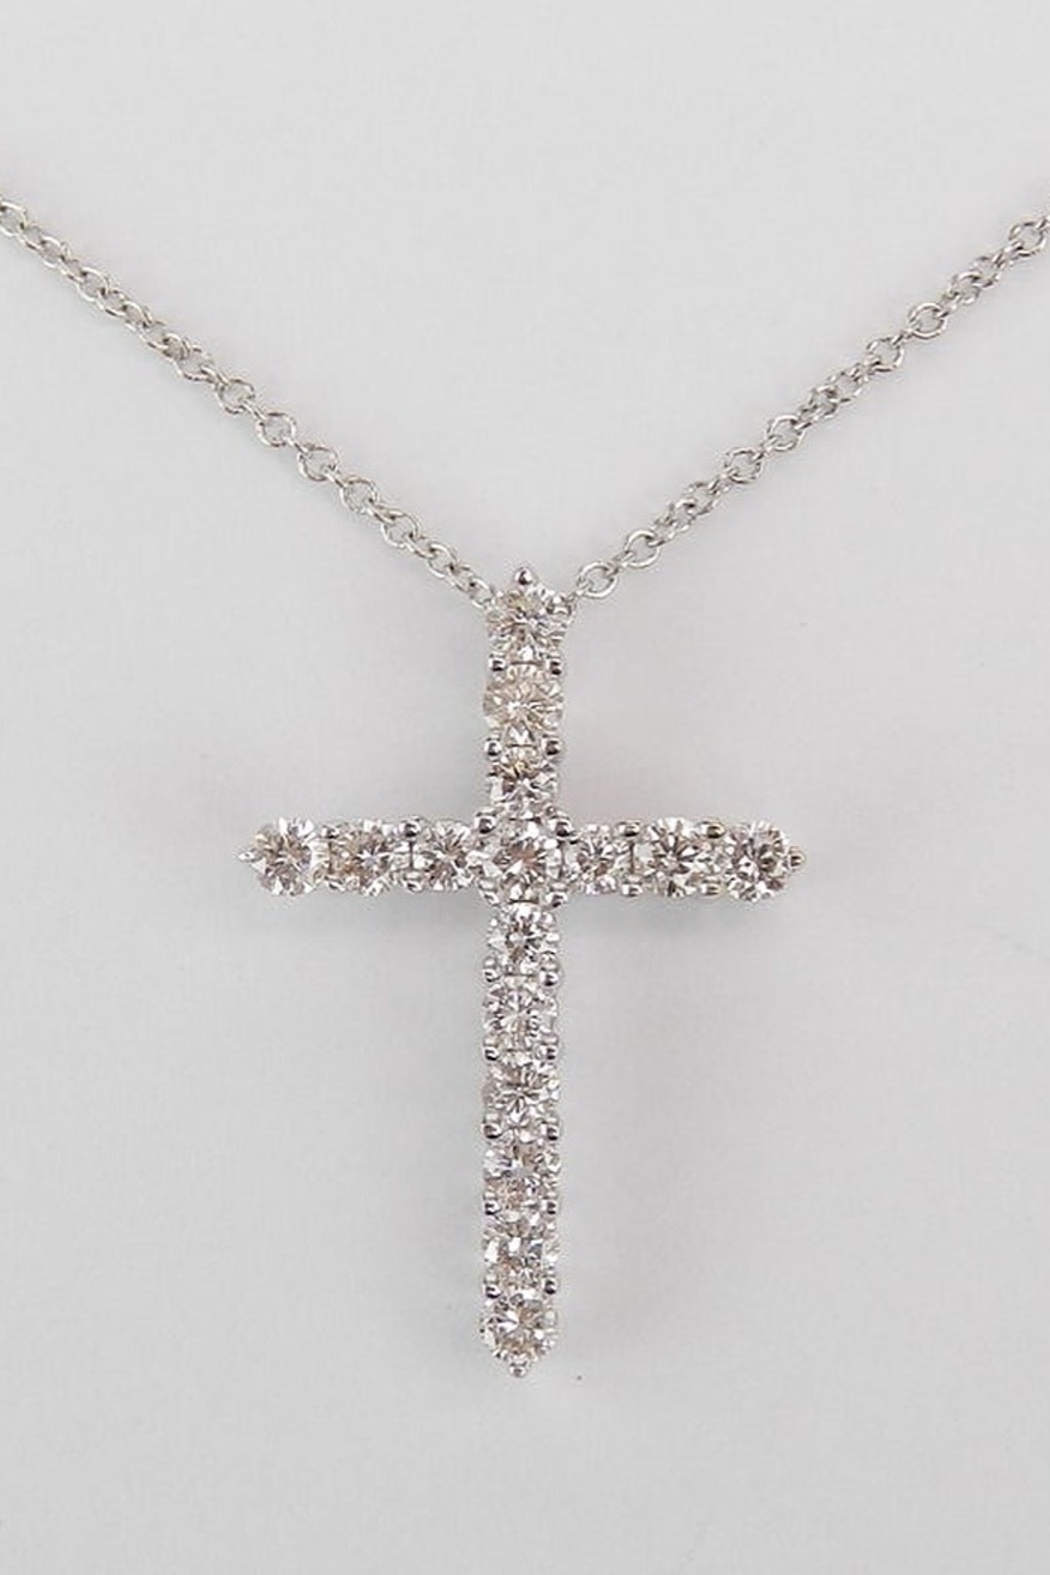 Details about  /Christmas 14K White Gold 0.06 CT Natural Diamond Religious Charm Cross Pendant